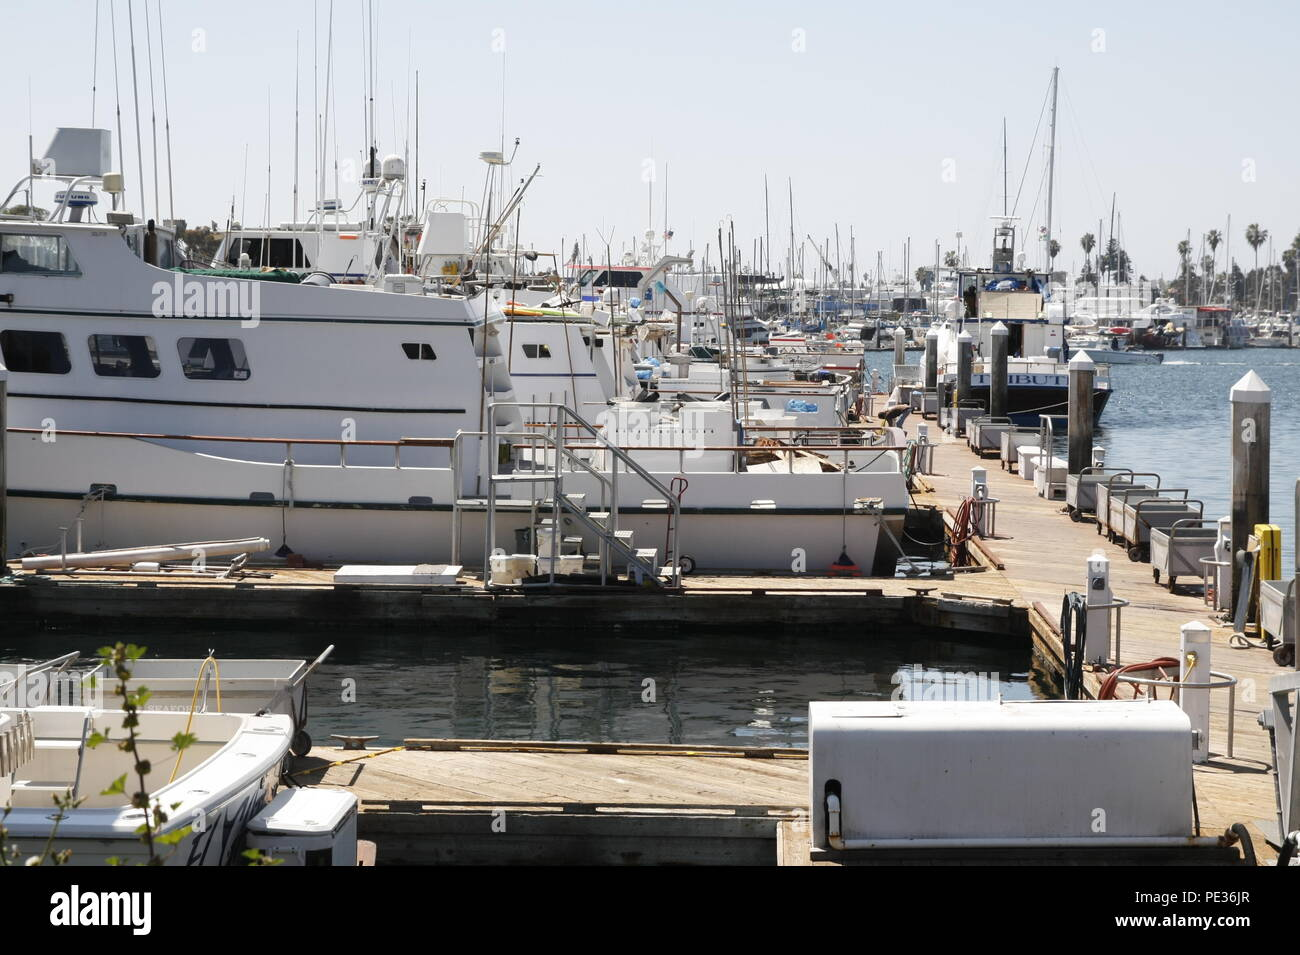 Harbor and Yacht - Stock Image